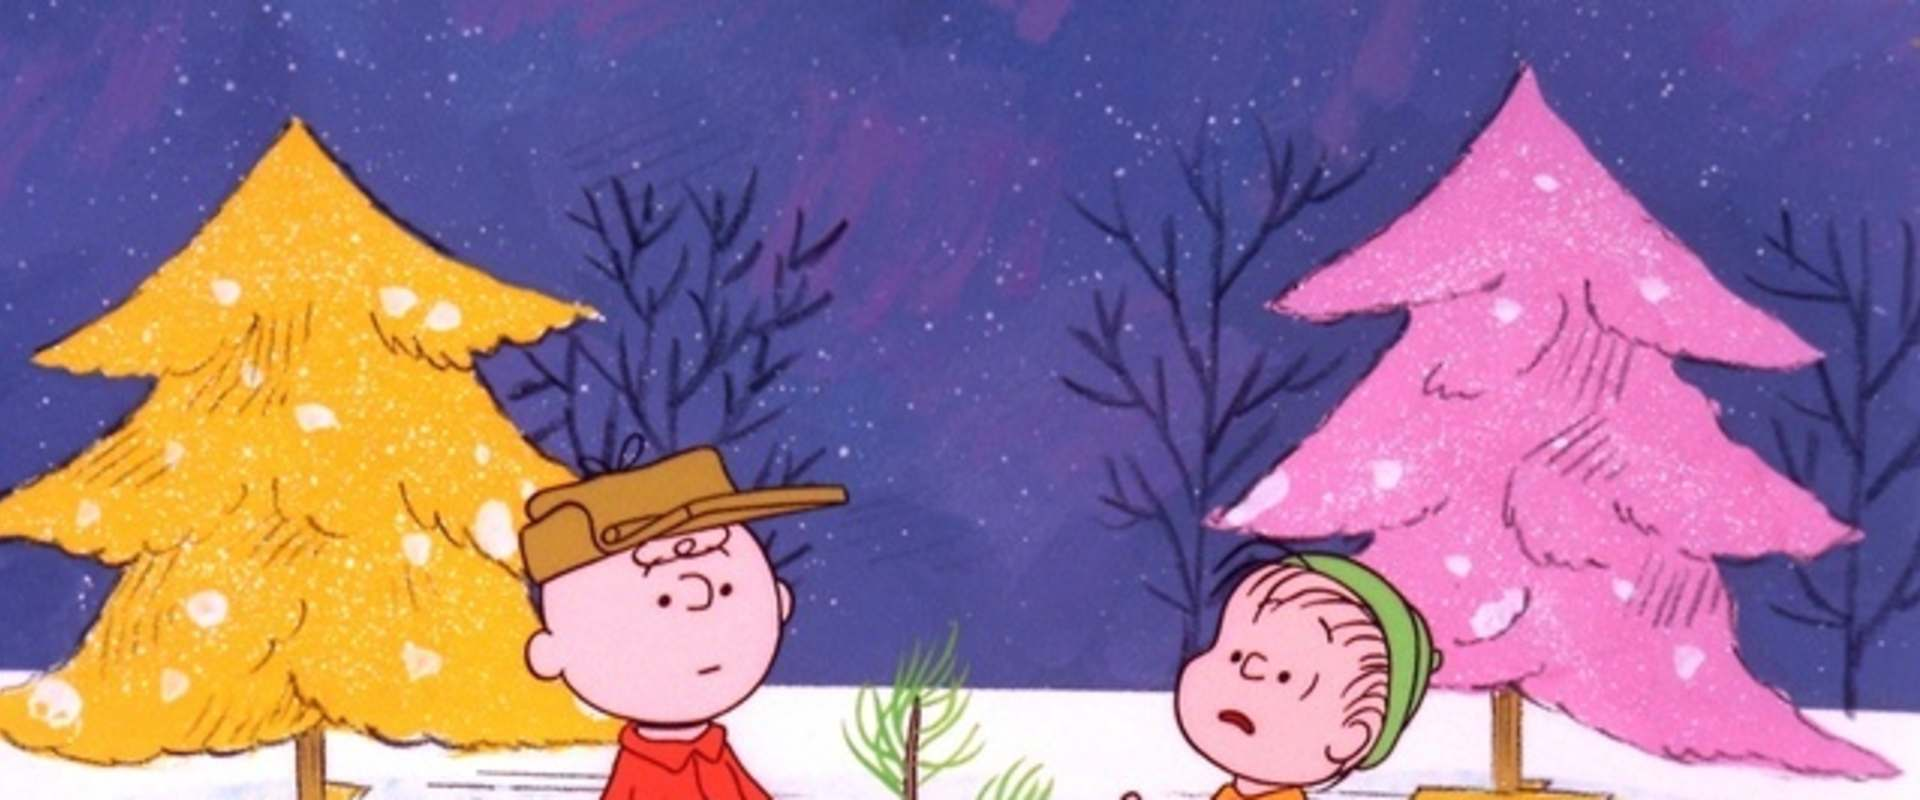 Watch A Charlie Brown Christmas on Netflix Today! | NetflixMovies.com